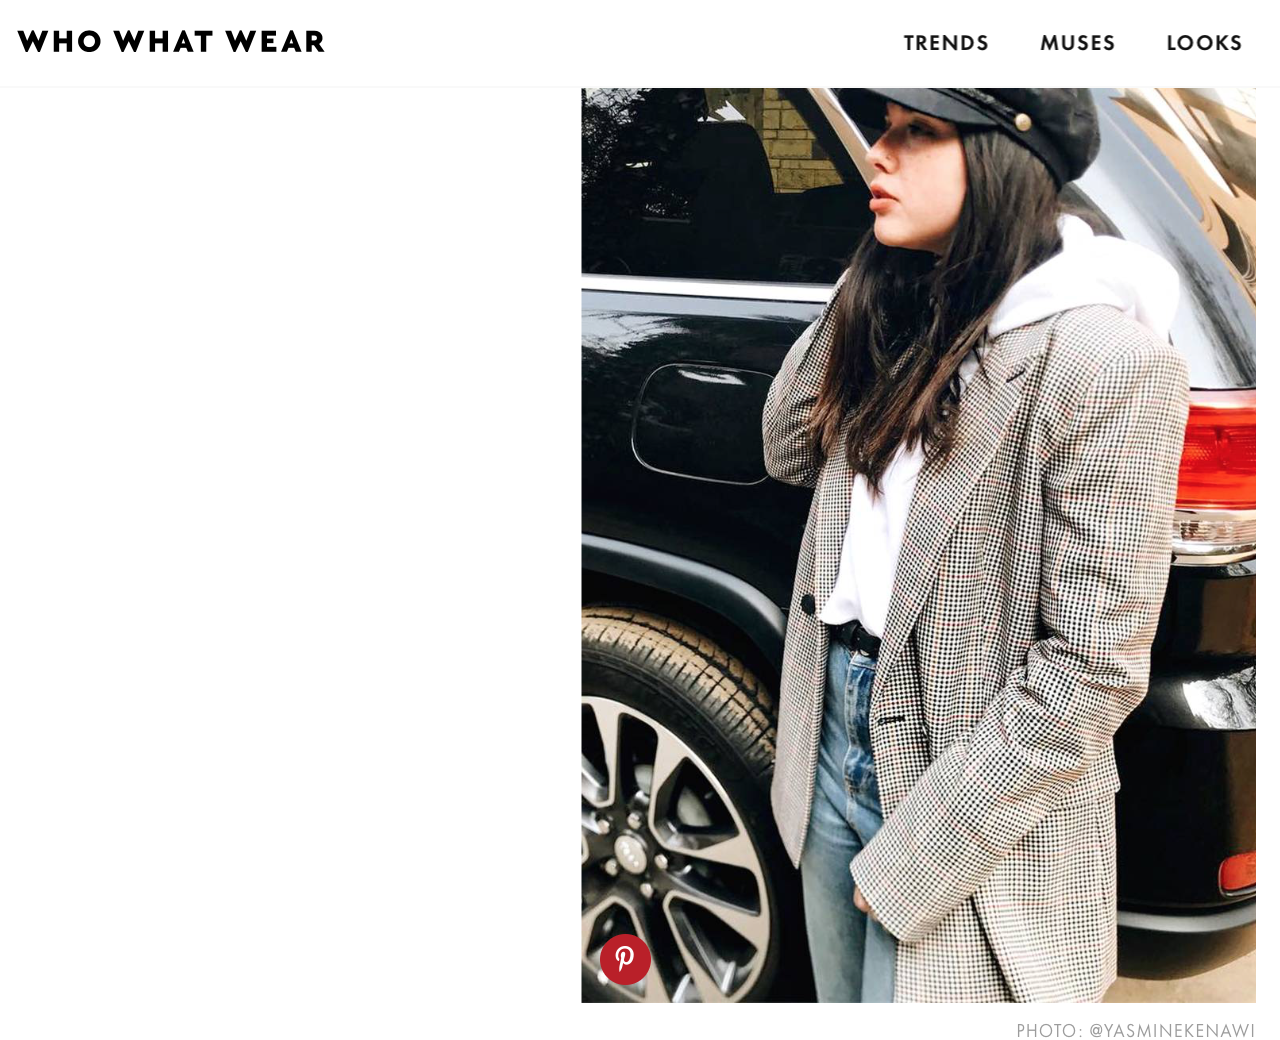 WHO WHAT WEAR    View article     here